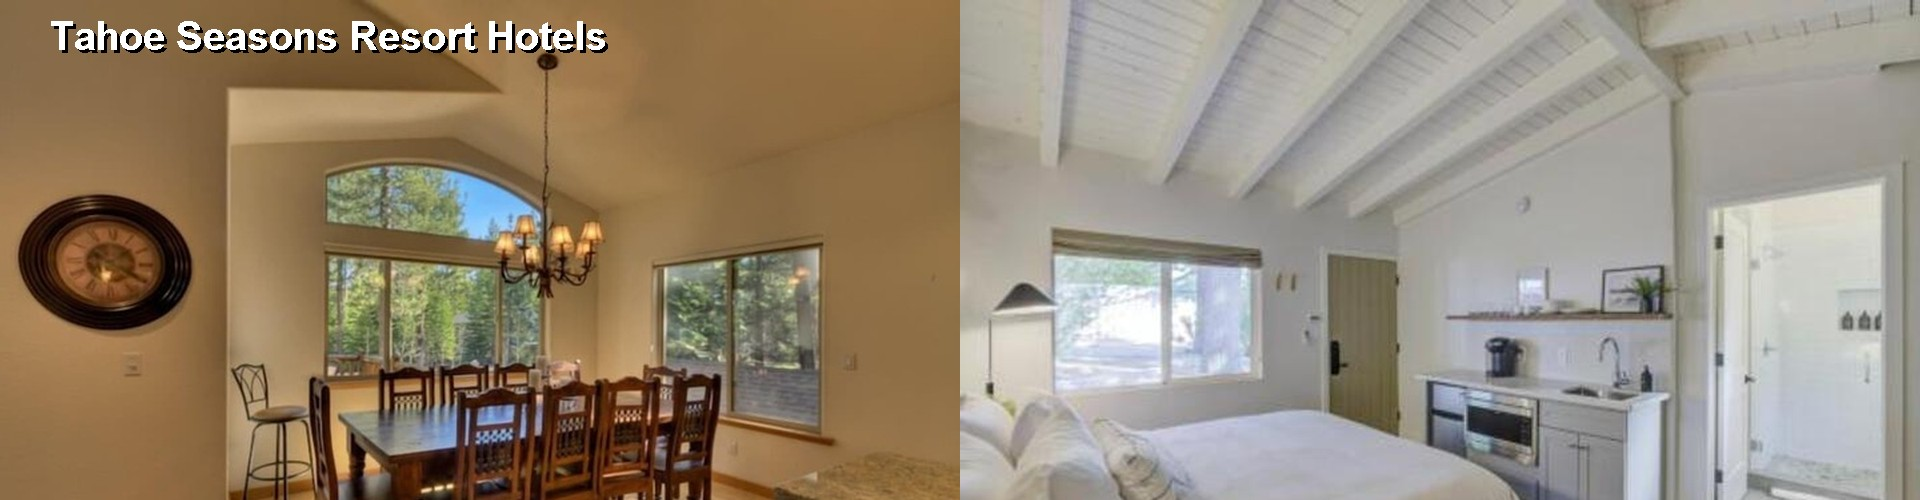 5 Best Hotels near Tahoe Seasons Resort